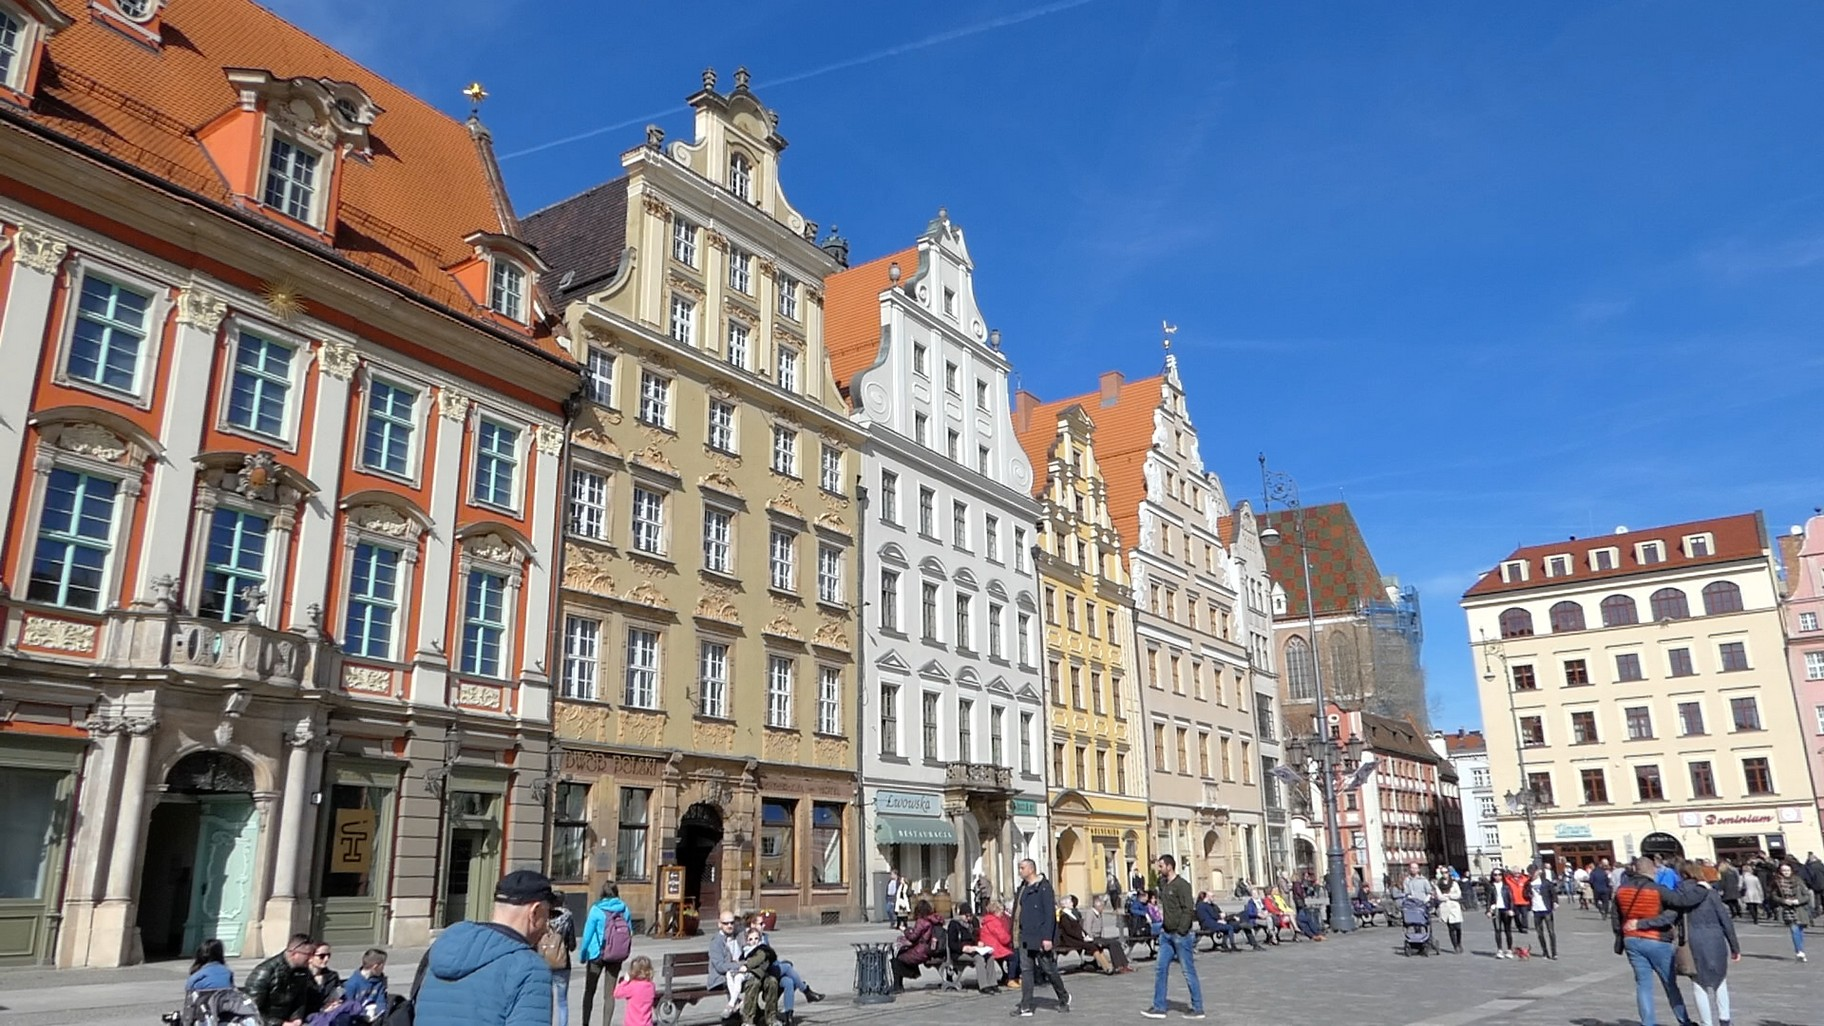 Wroclaw Old Town & Conspirators Guided Tour